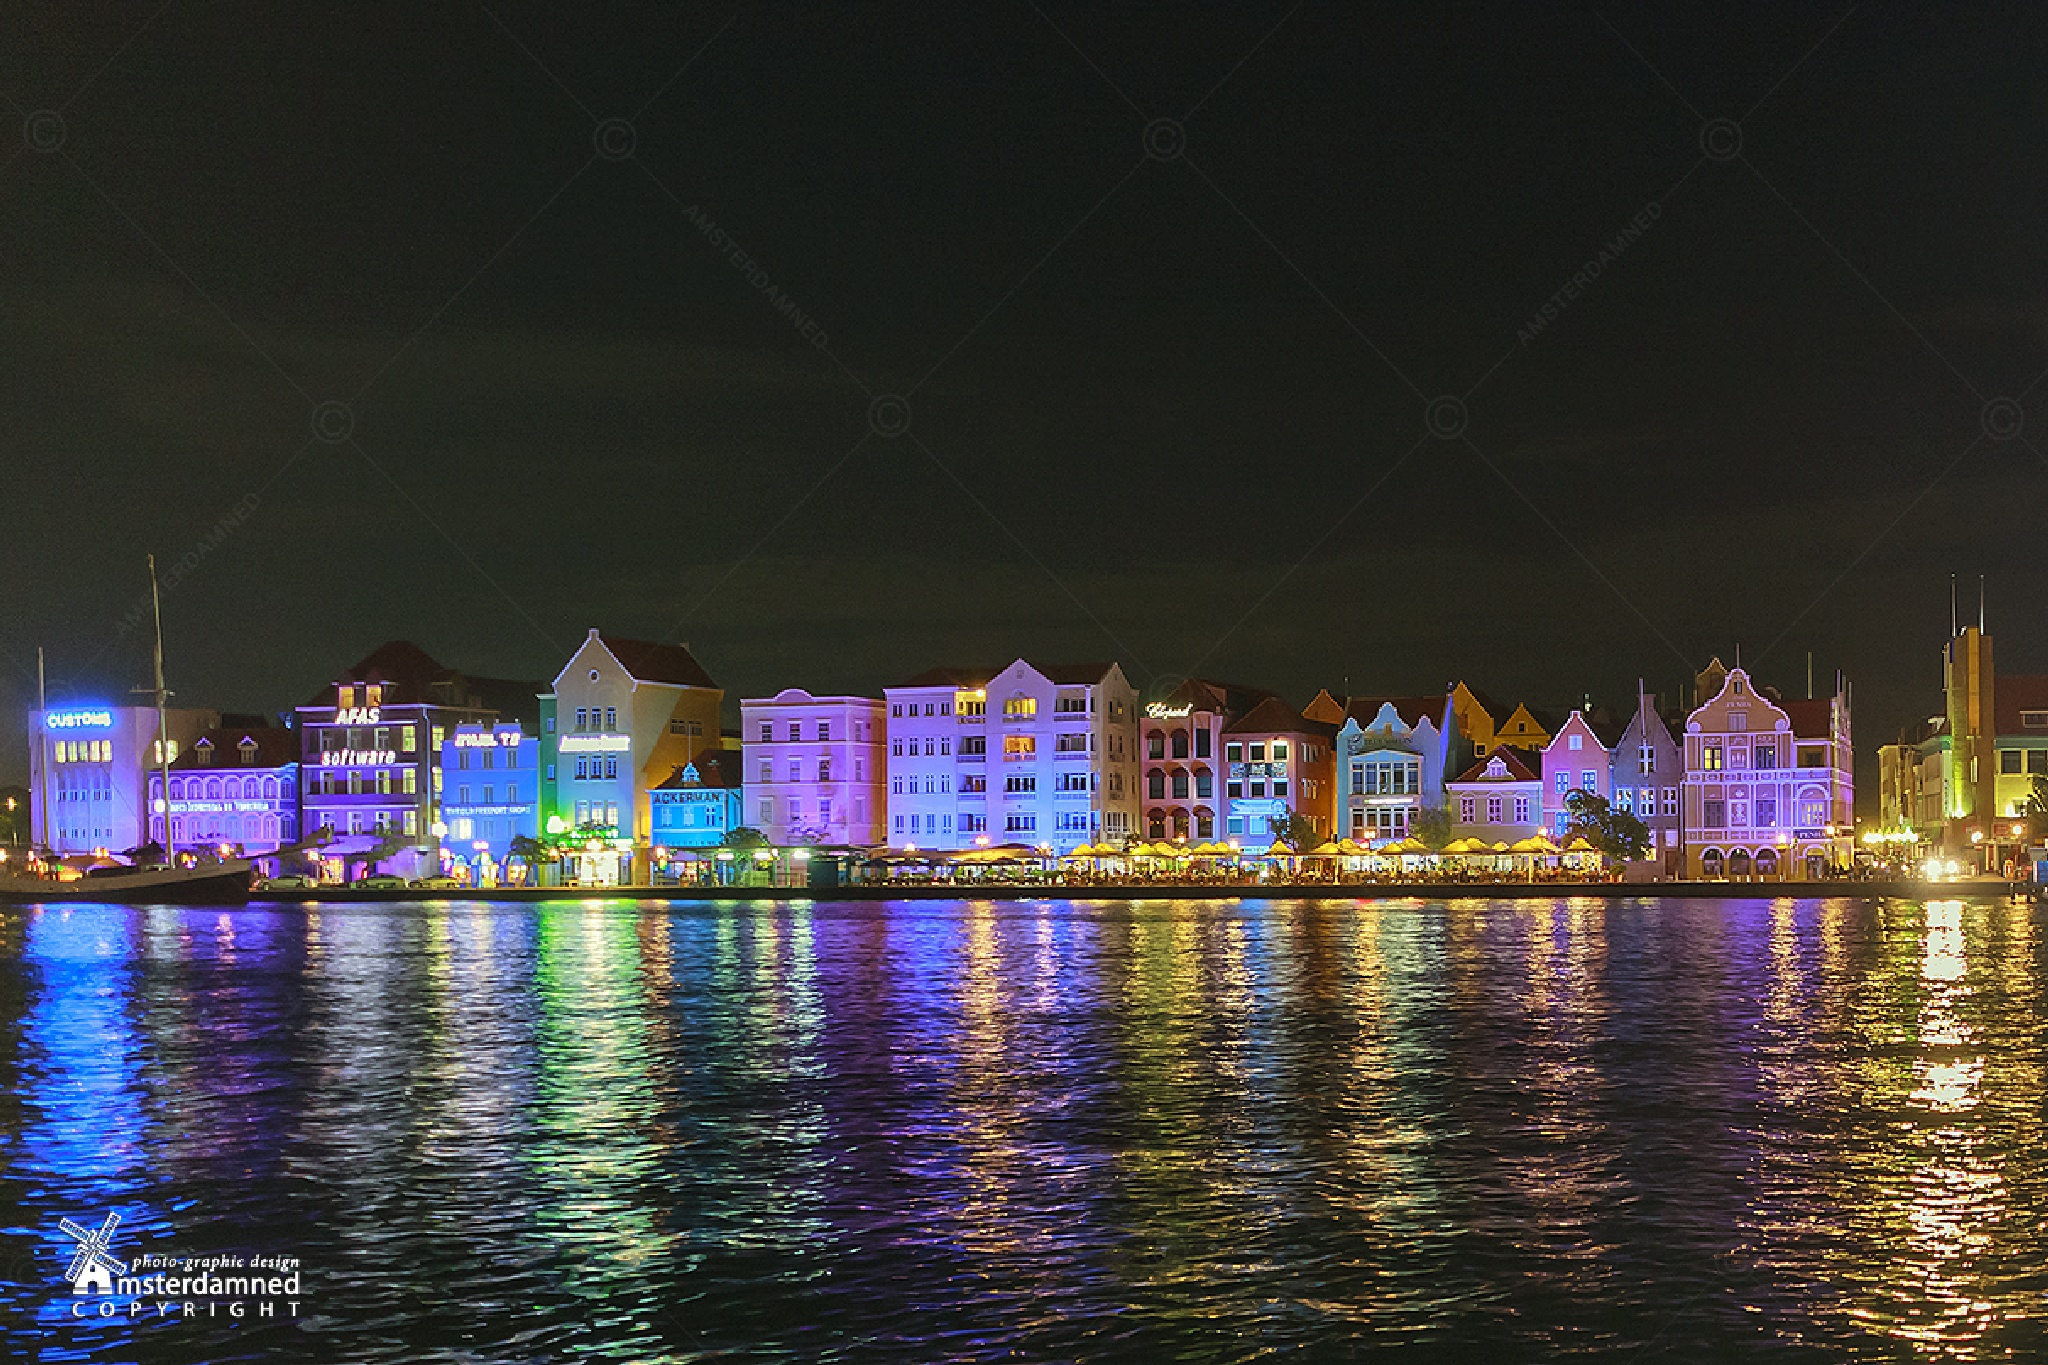 Willemstad, Curacao by Michael